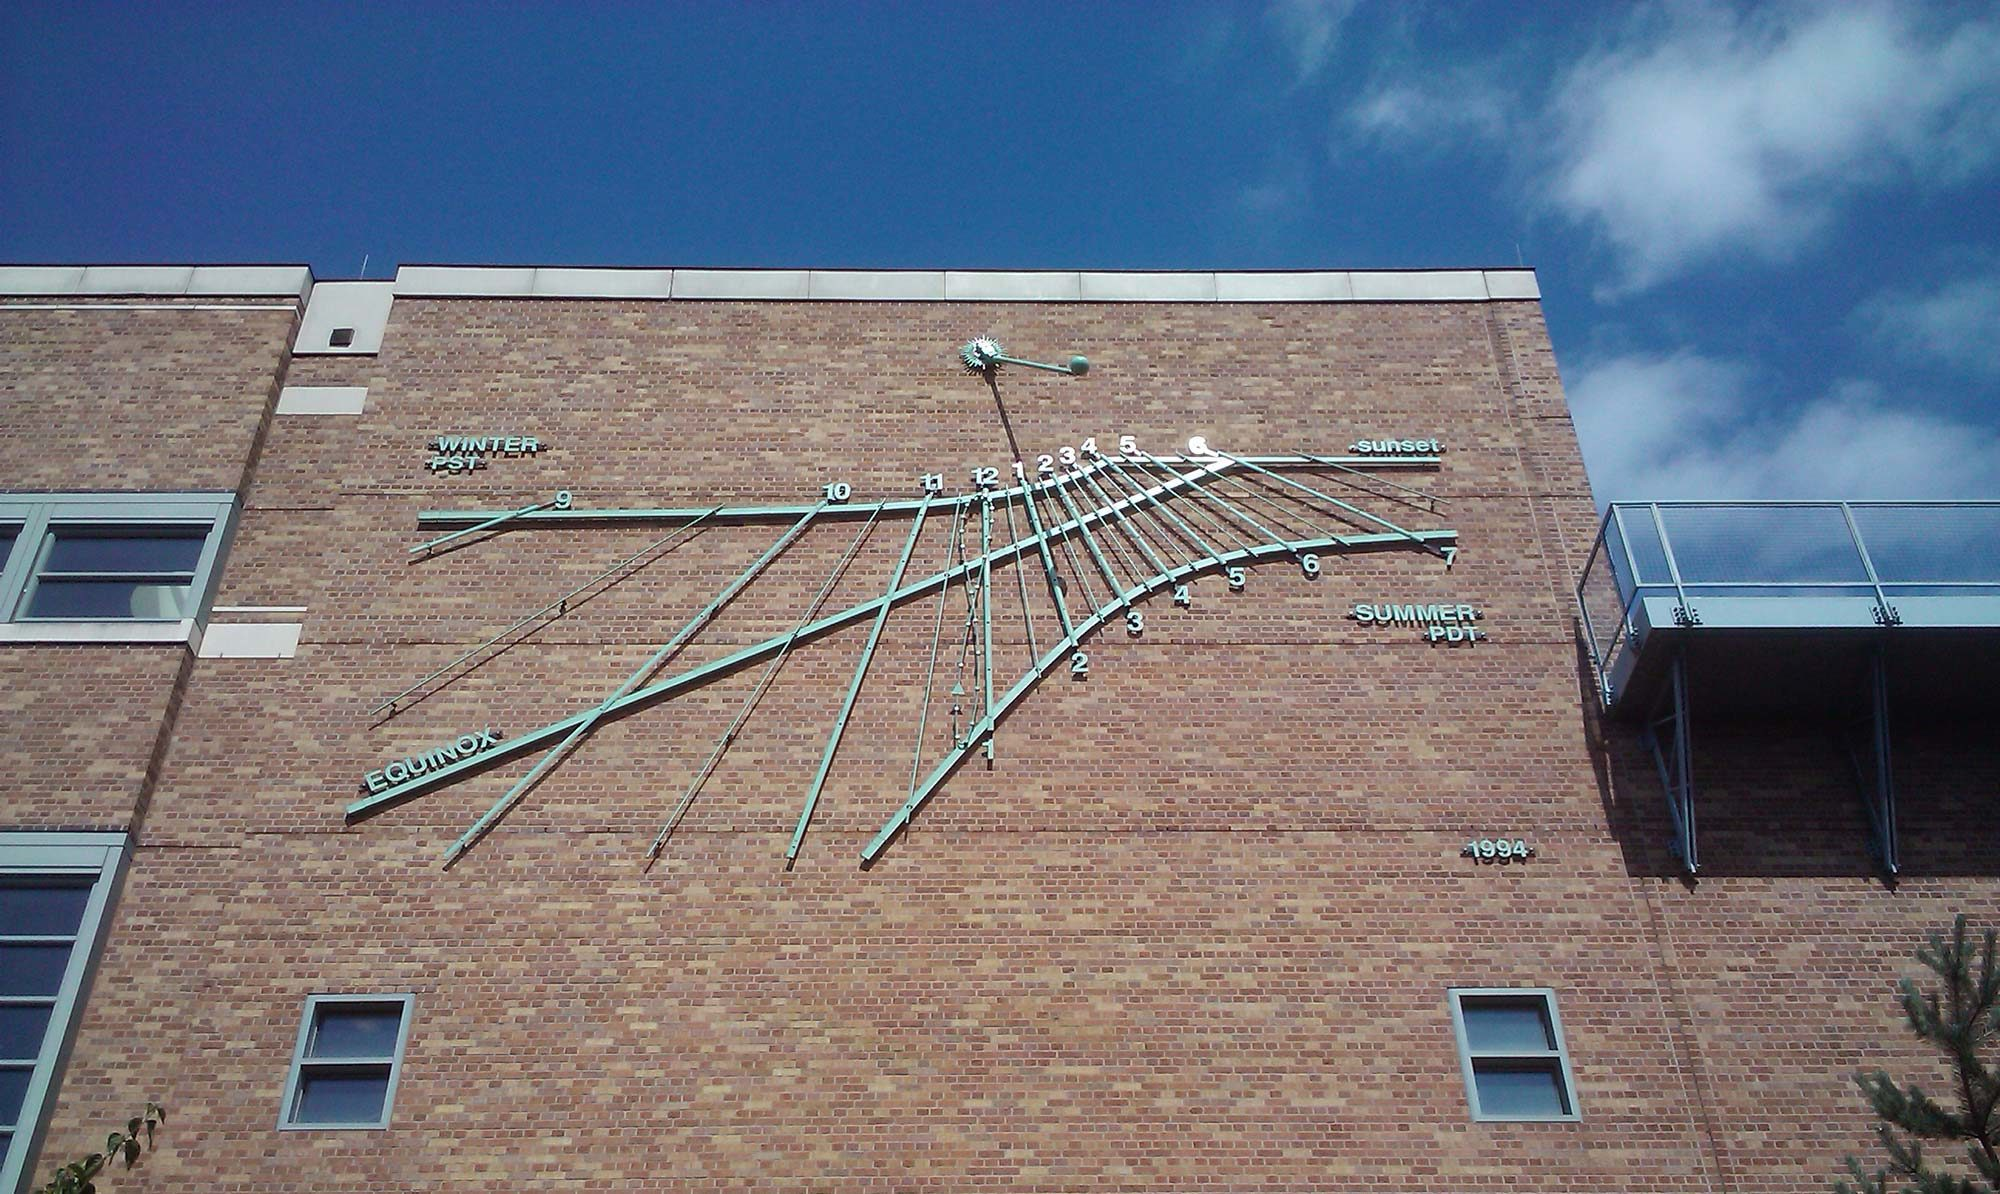 image of sundial on building at University of Washington - author Gregory Olson